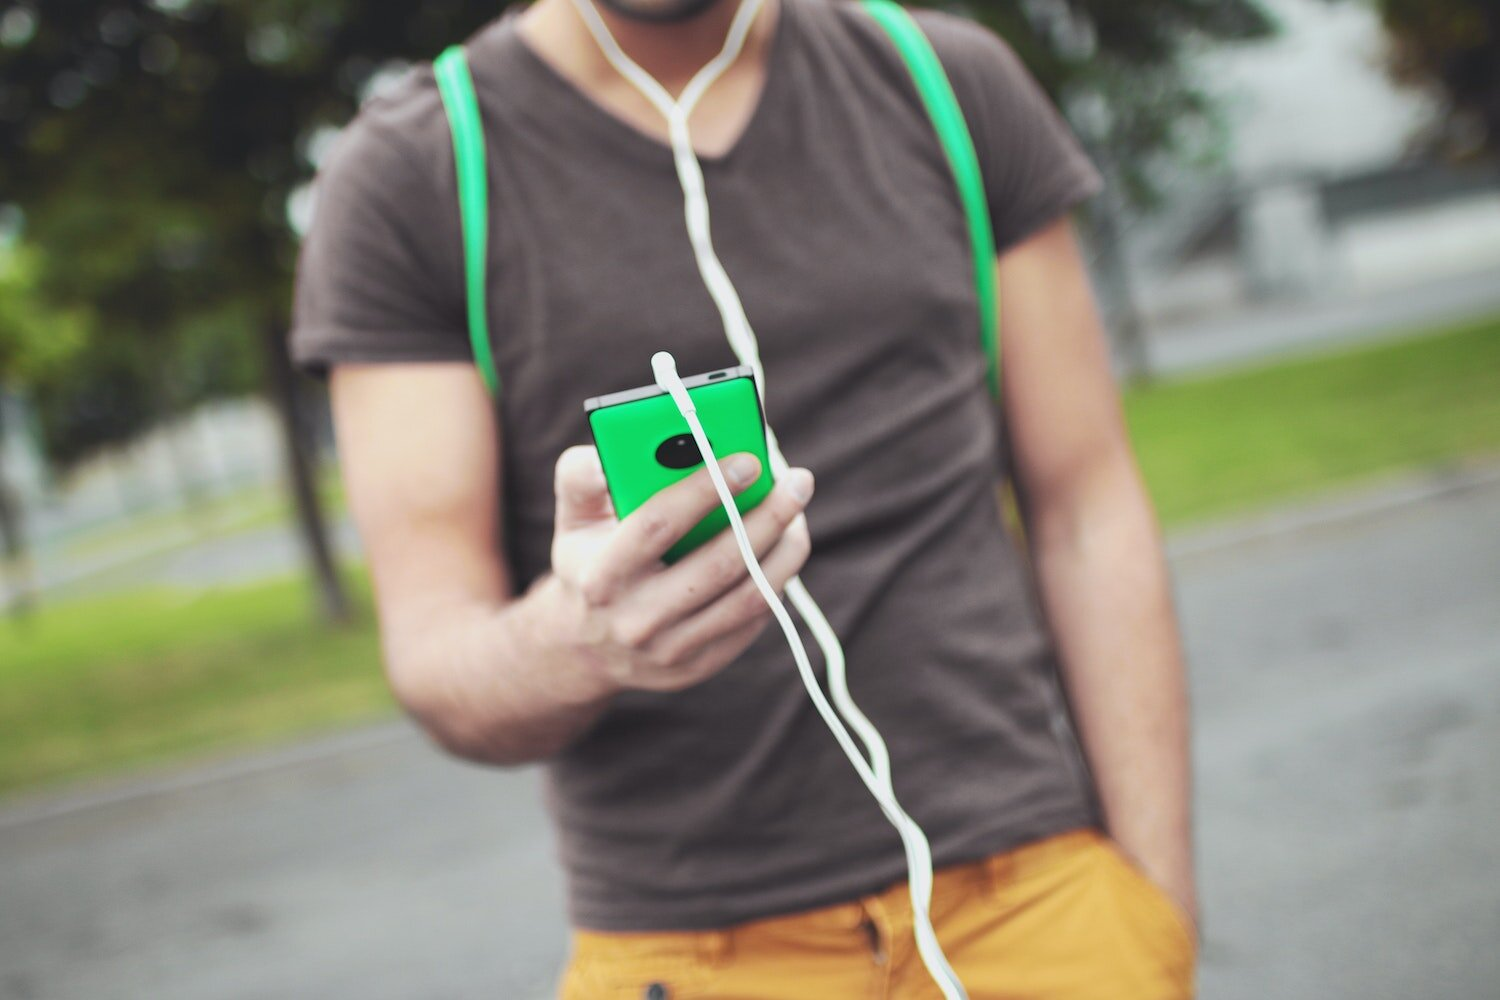 SoundWalk allows anyone with access to a smartphone to experience a solo music adventure.